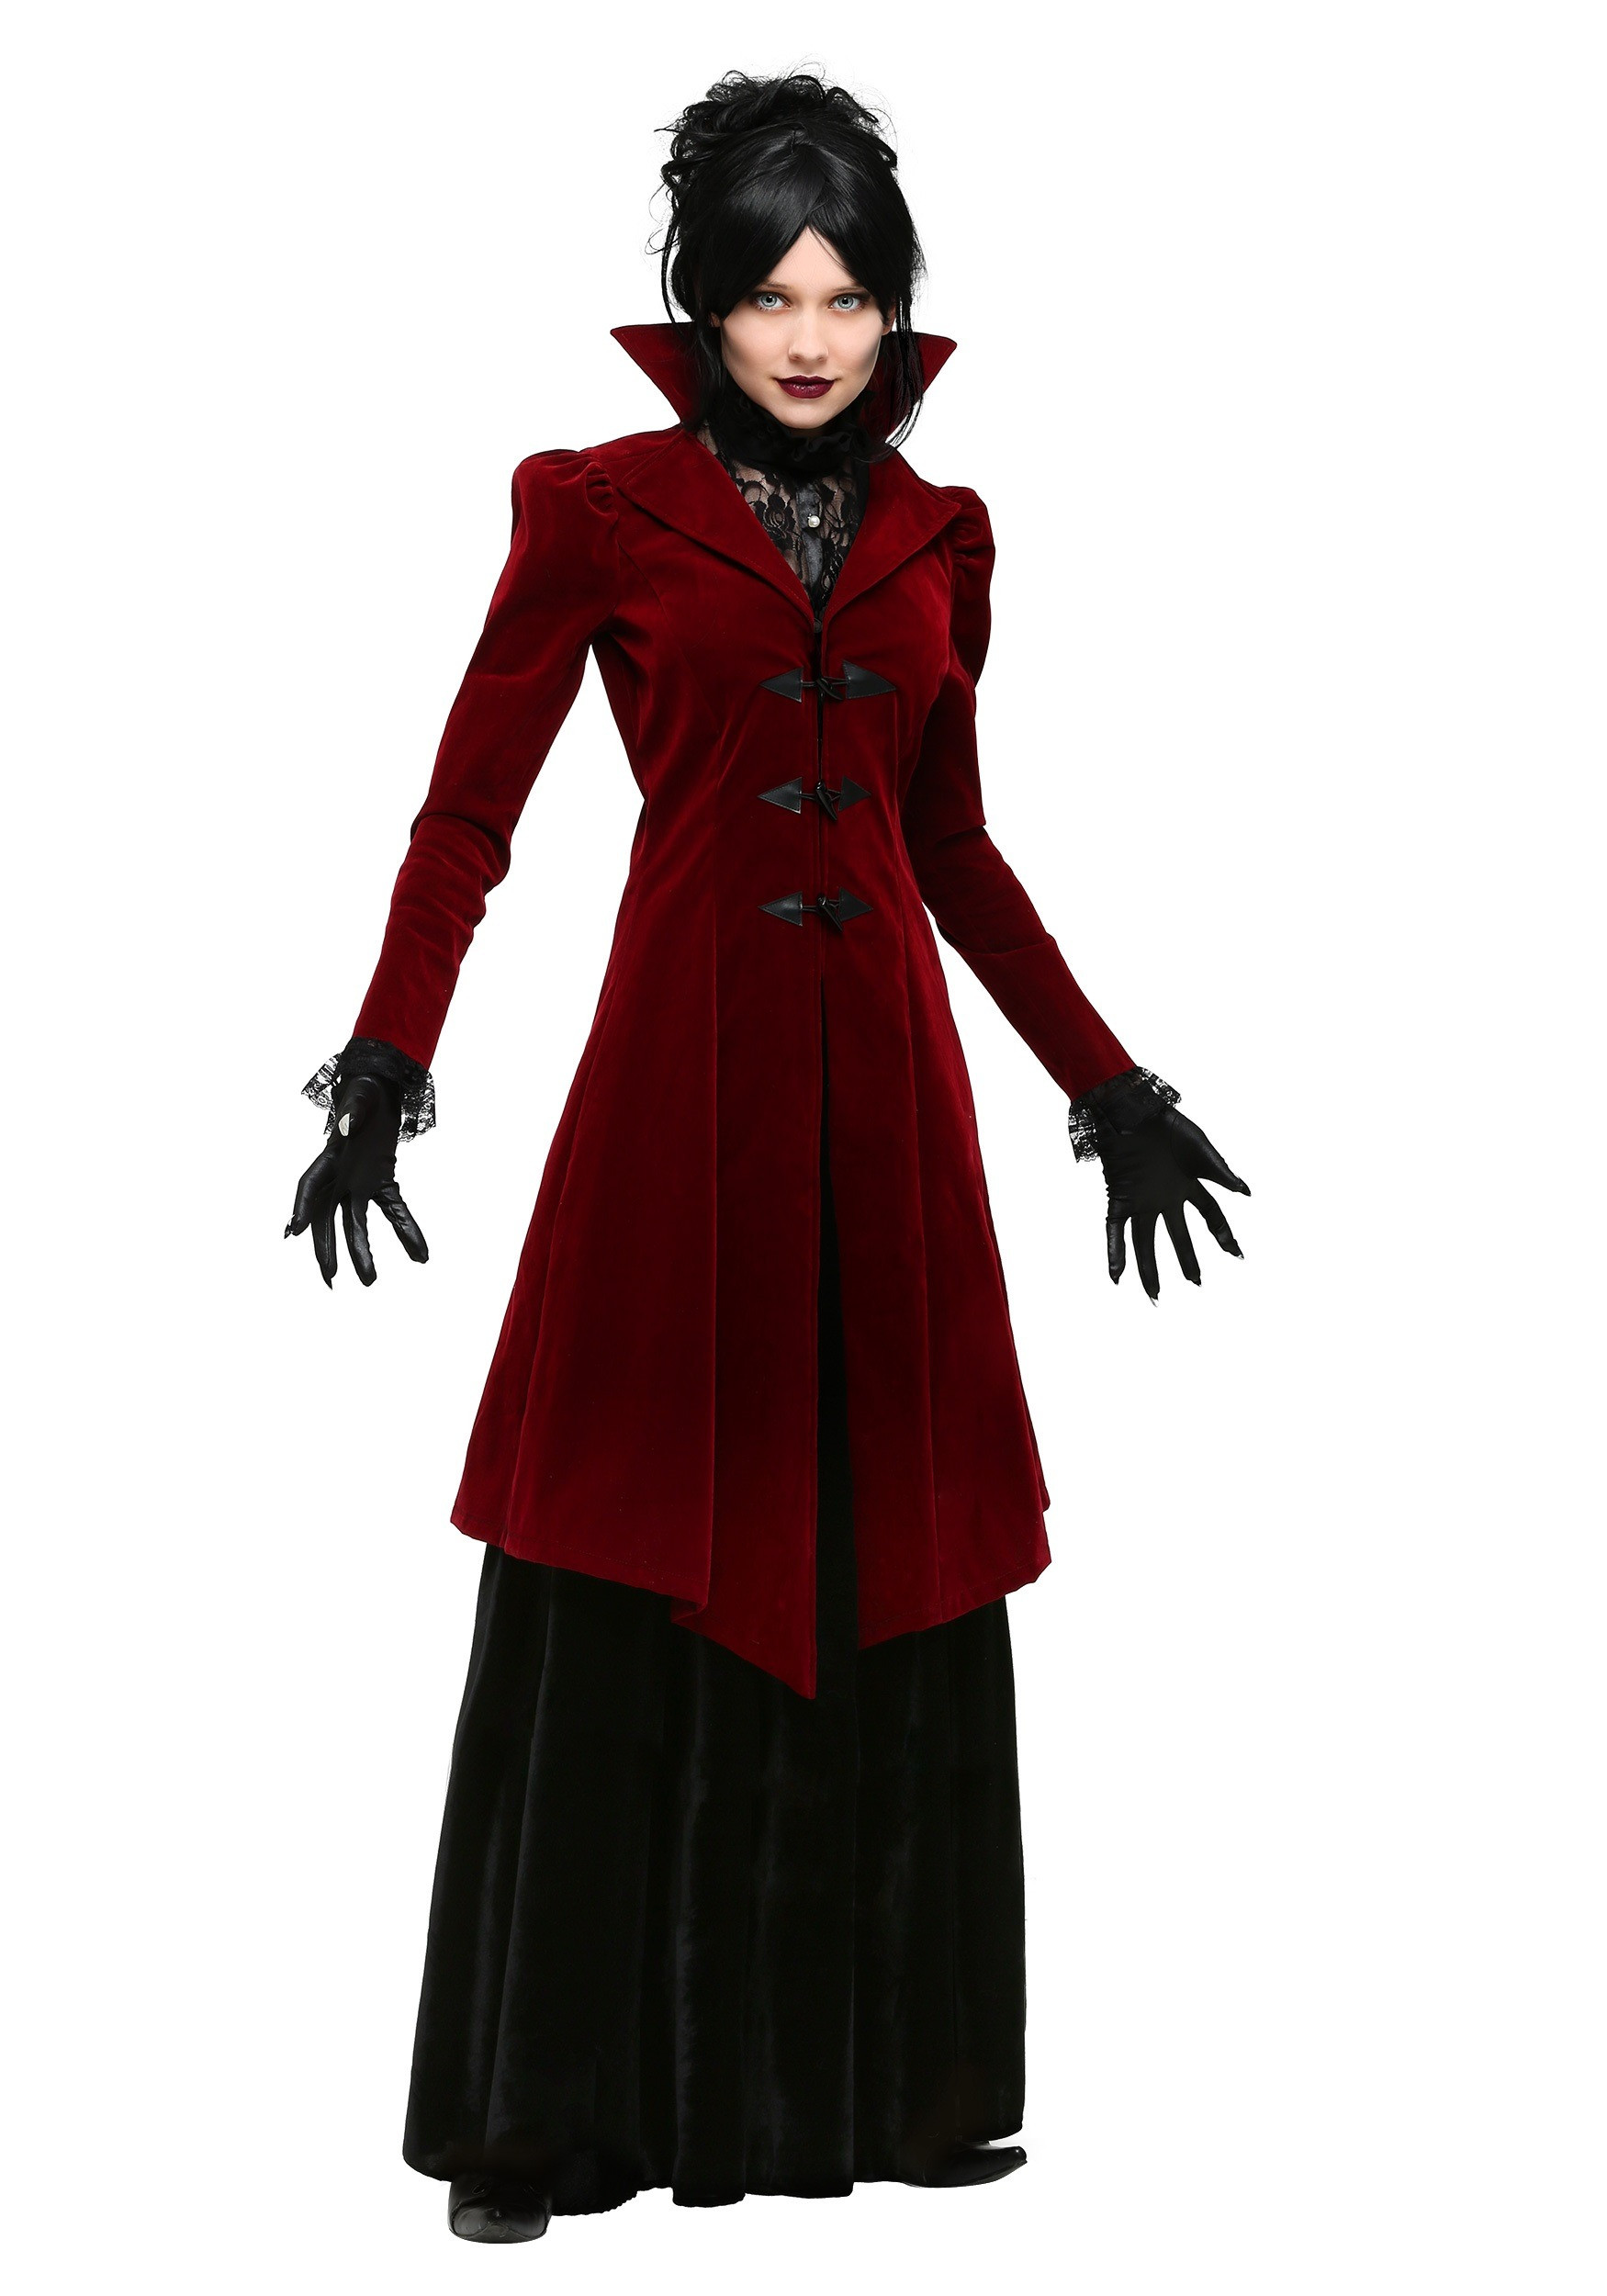 Best ideas about Women DIY Costumes . Save or Pin Women s Plus Size Delightfully Dreadful Vampiress Costume Now.